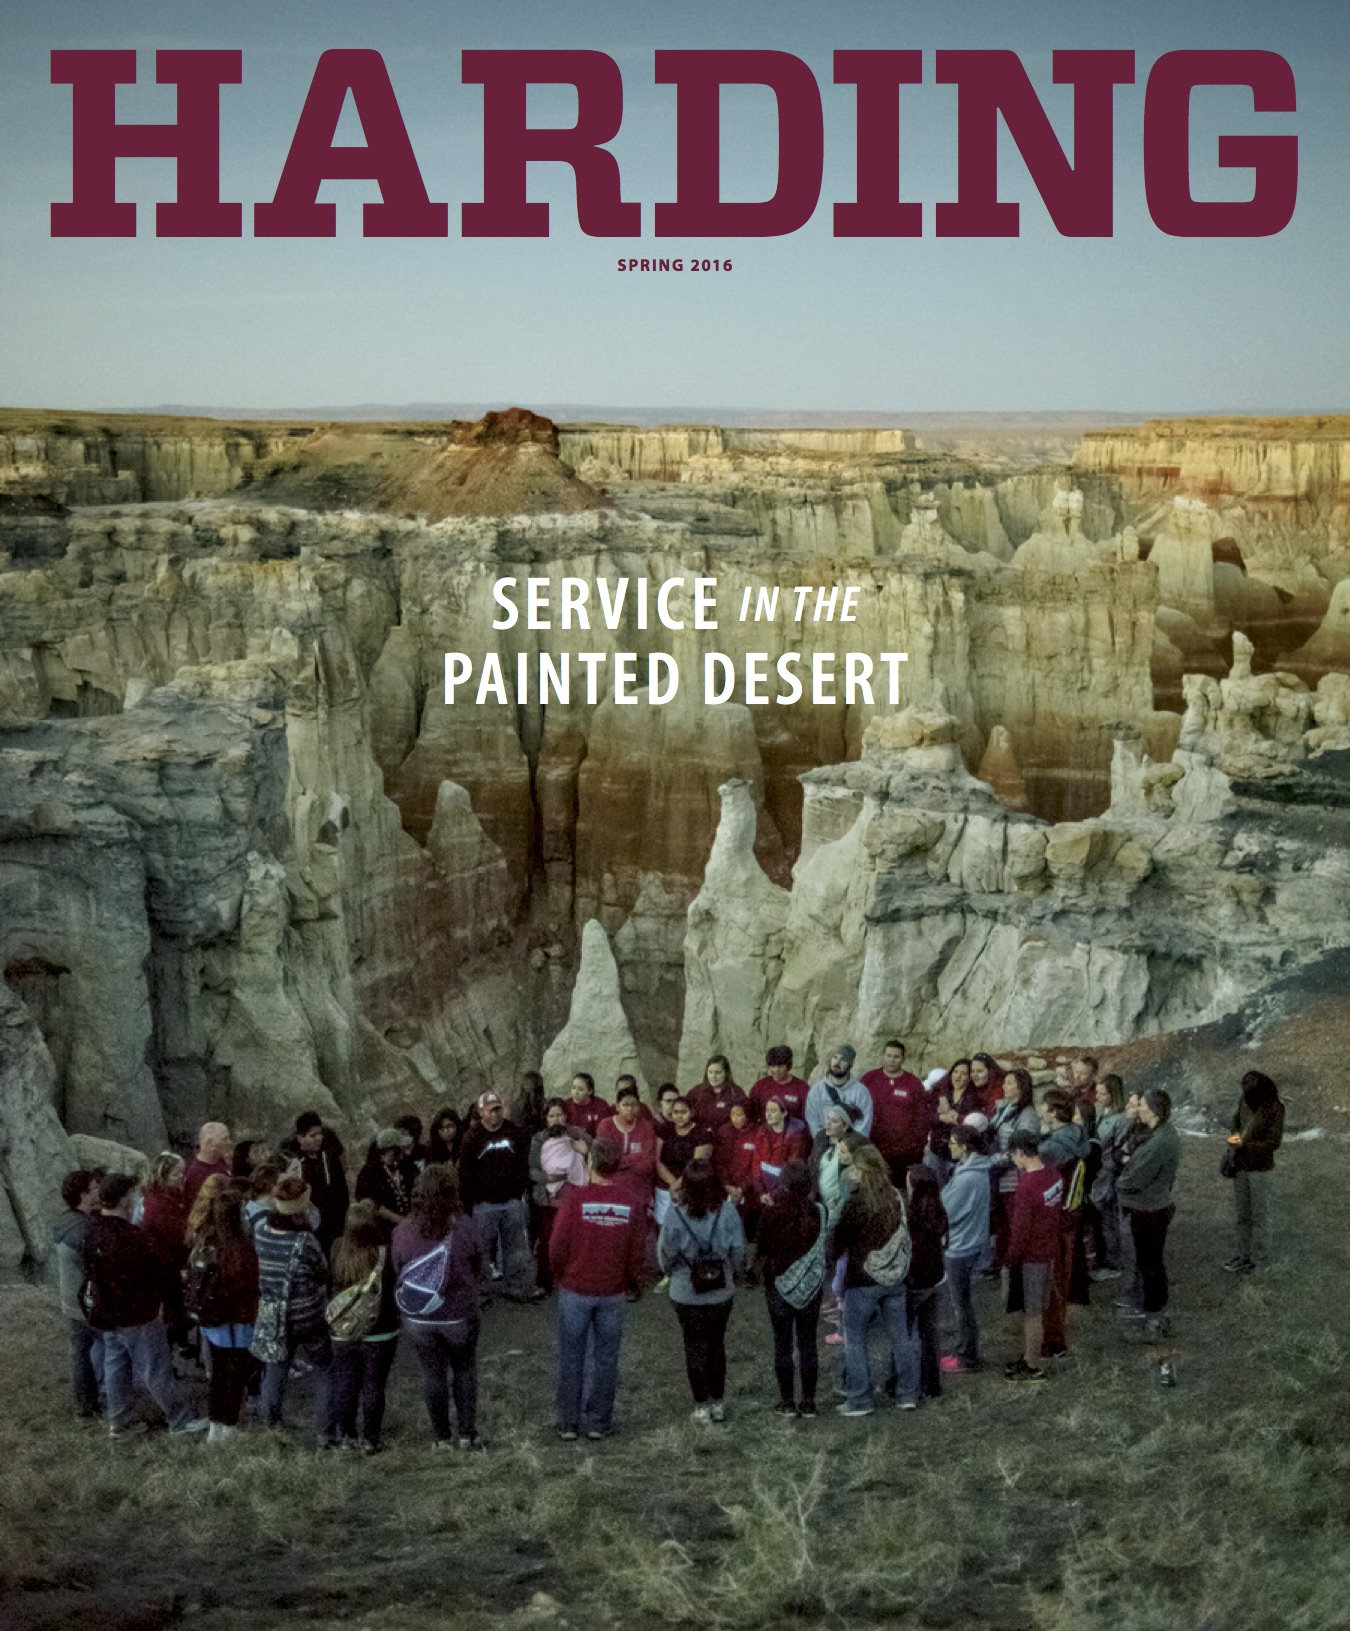 https://wordpress.harding.edu/harding/files/2016/12/Harding-spring-mag-16-for-review-dragged-1.jpg